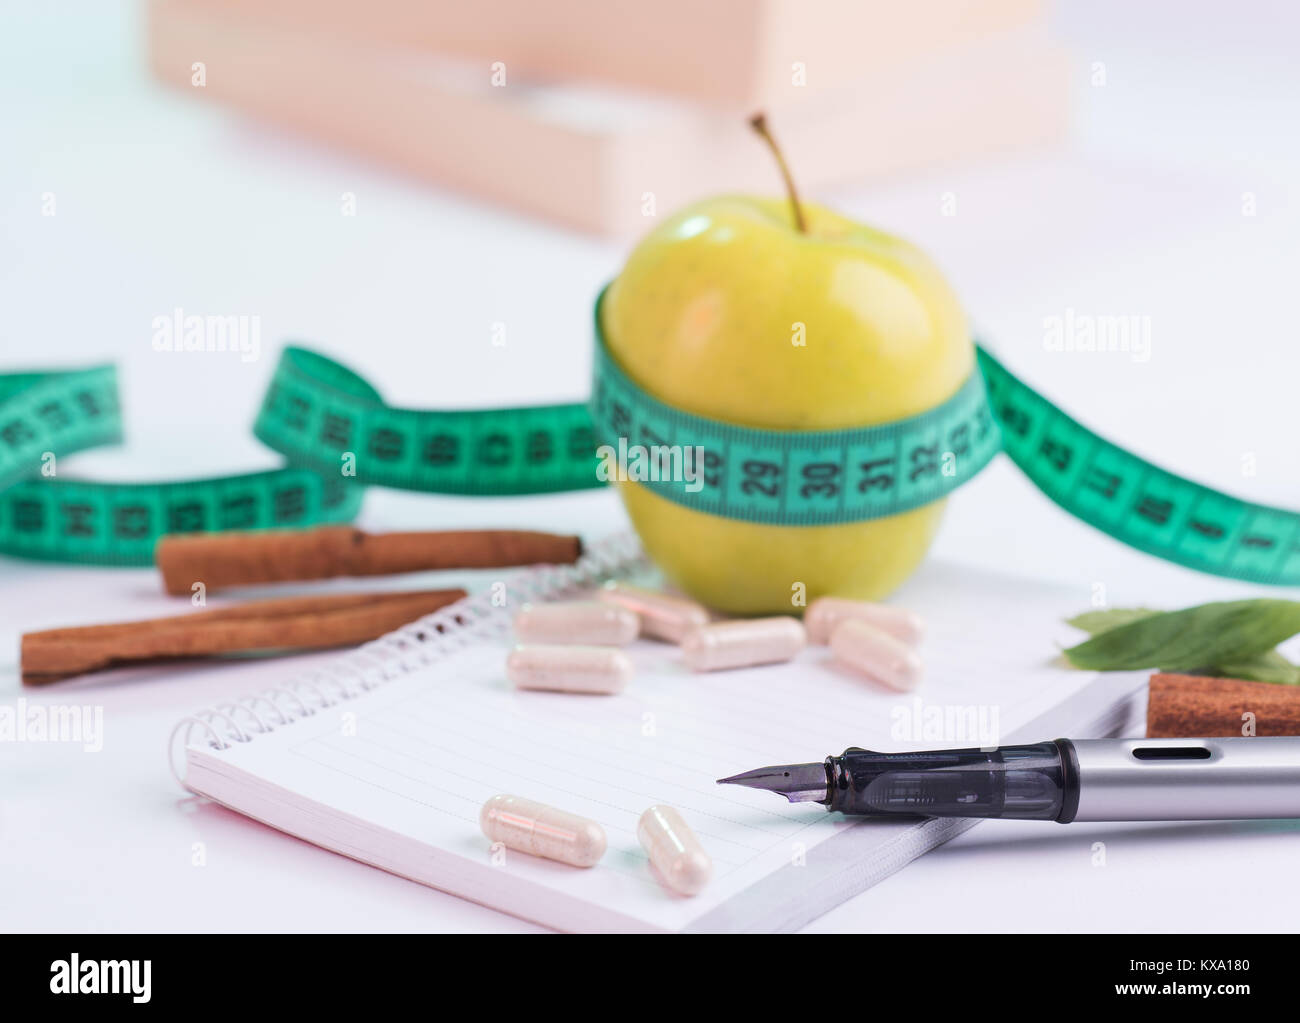 Diet Plan Concept and Slimming Plan - Stock Image